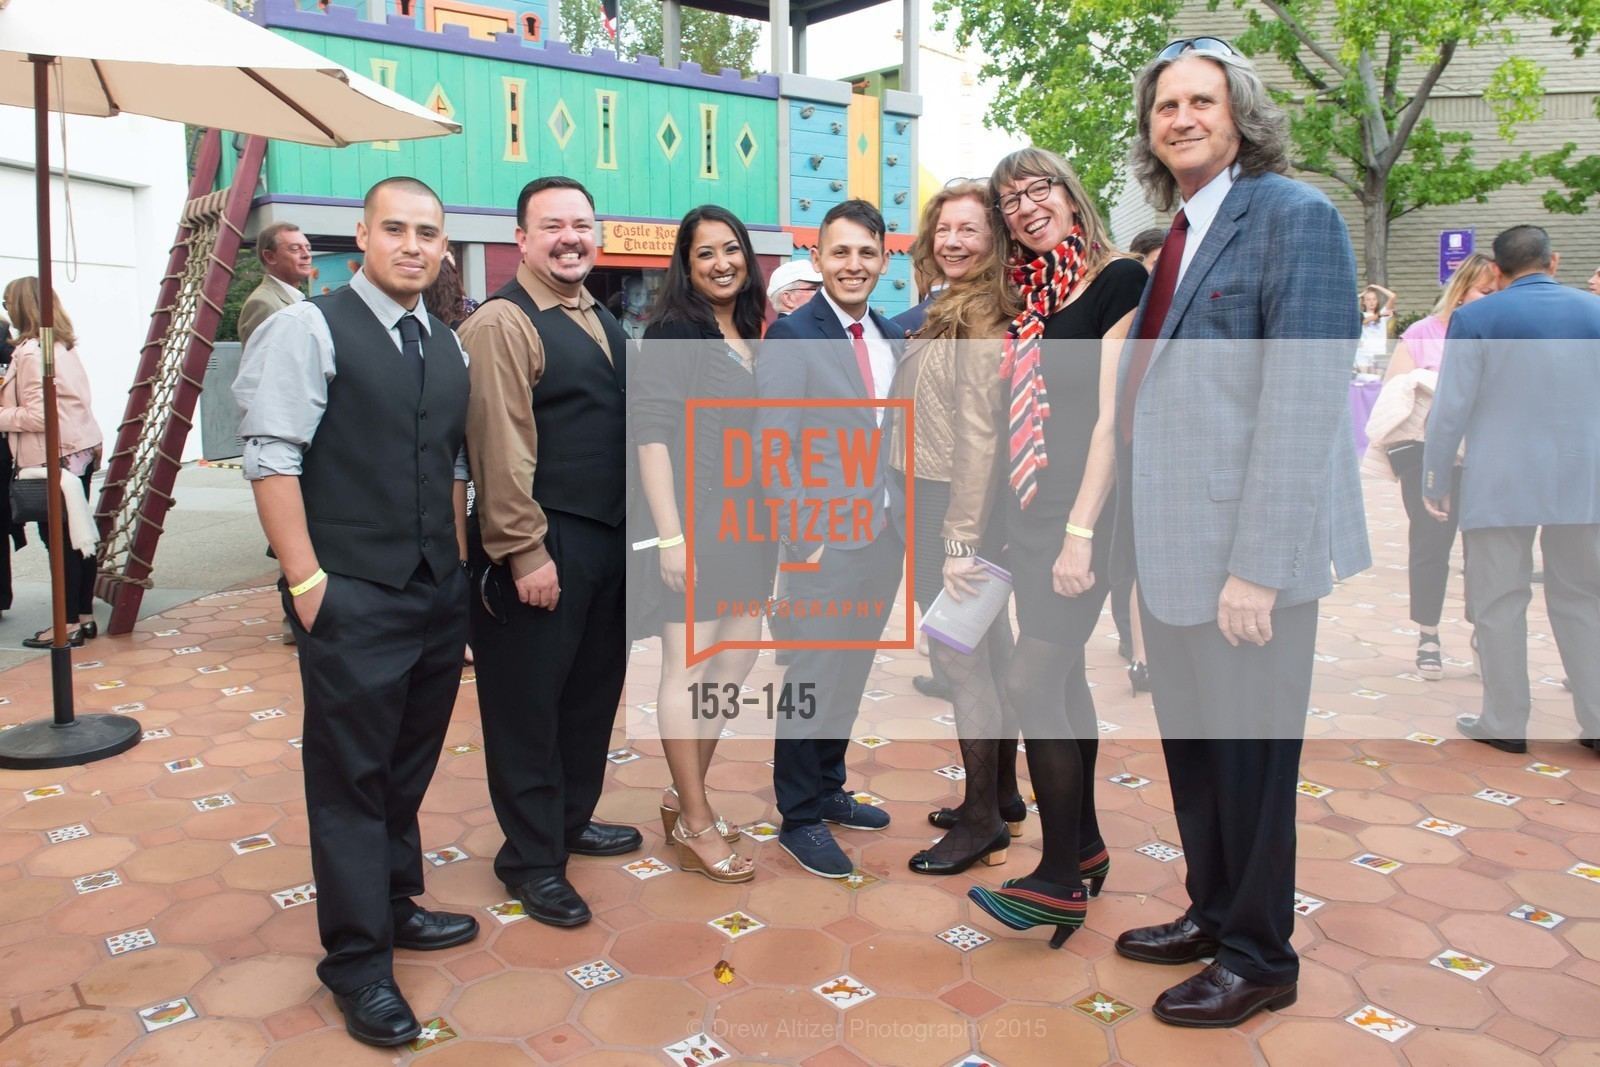 Will DeLeon, Nick Zuniga, Sangeeta Jagdish, David Rodriguez, Suzanne Butler, Barbara Butler, James Butler, DREAMS HAPPEN: Playhouse Auction and Gala, Stanford Shopping Center, June 5th, 2015,Drew Altizer, Drew Altizer Photography, full-service agency, private events, San Francisco photographer, photographer california